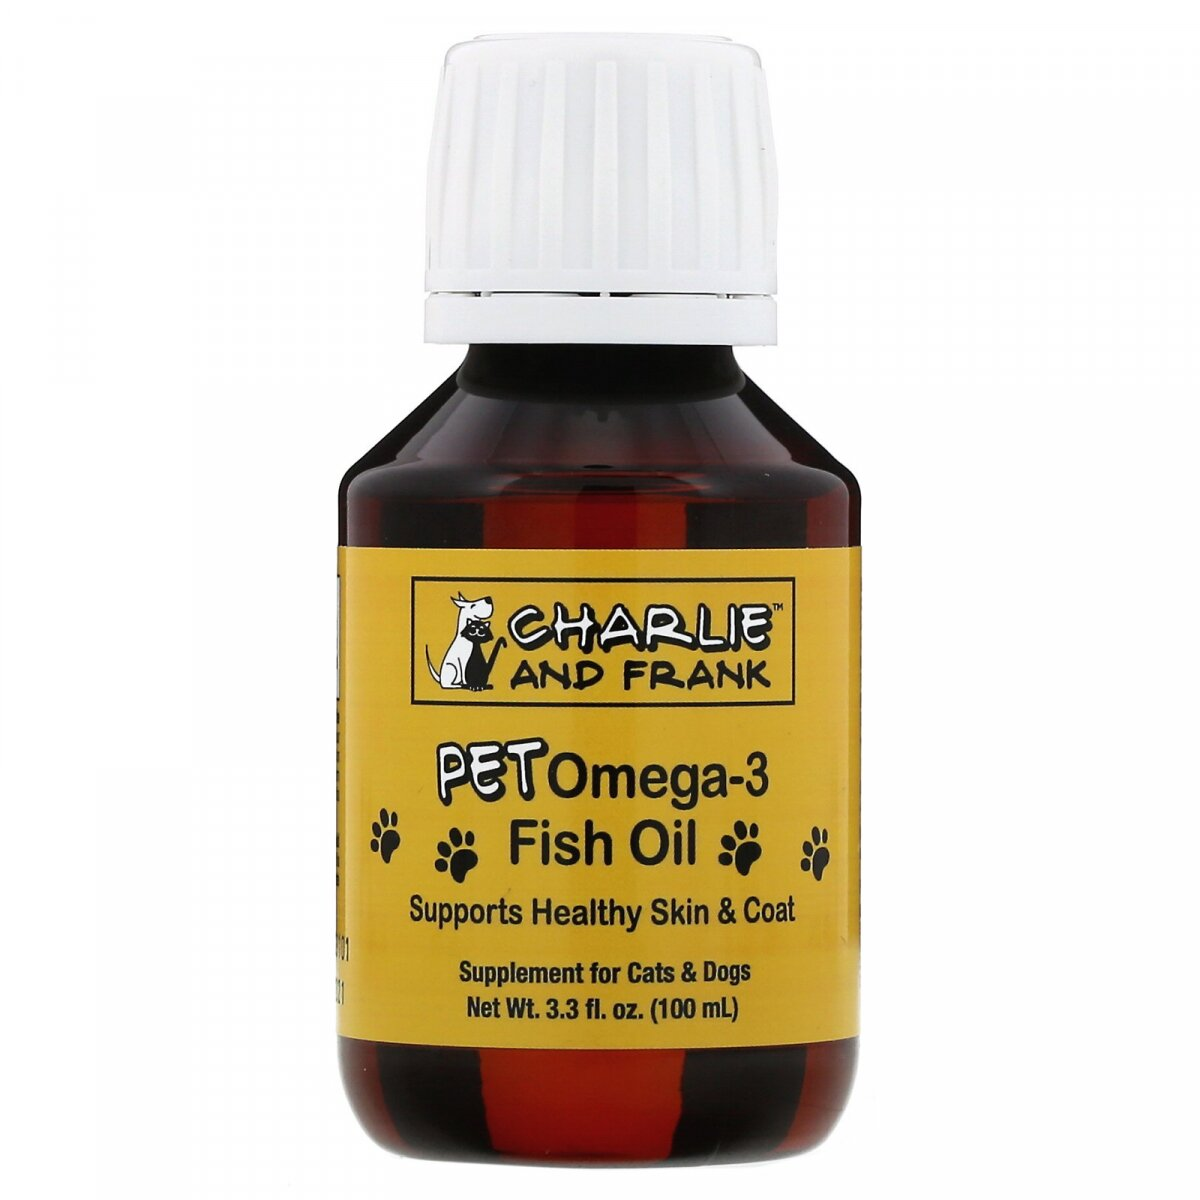 Pet Omega-3 Рыбий жир, для кошек и собак, Pet Omega-3 Fish Oil, For Cats & Dogs, Charlie & Frank, 100 мл